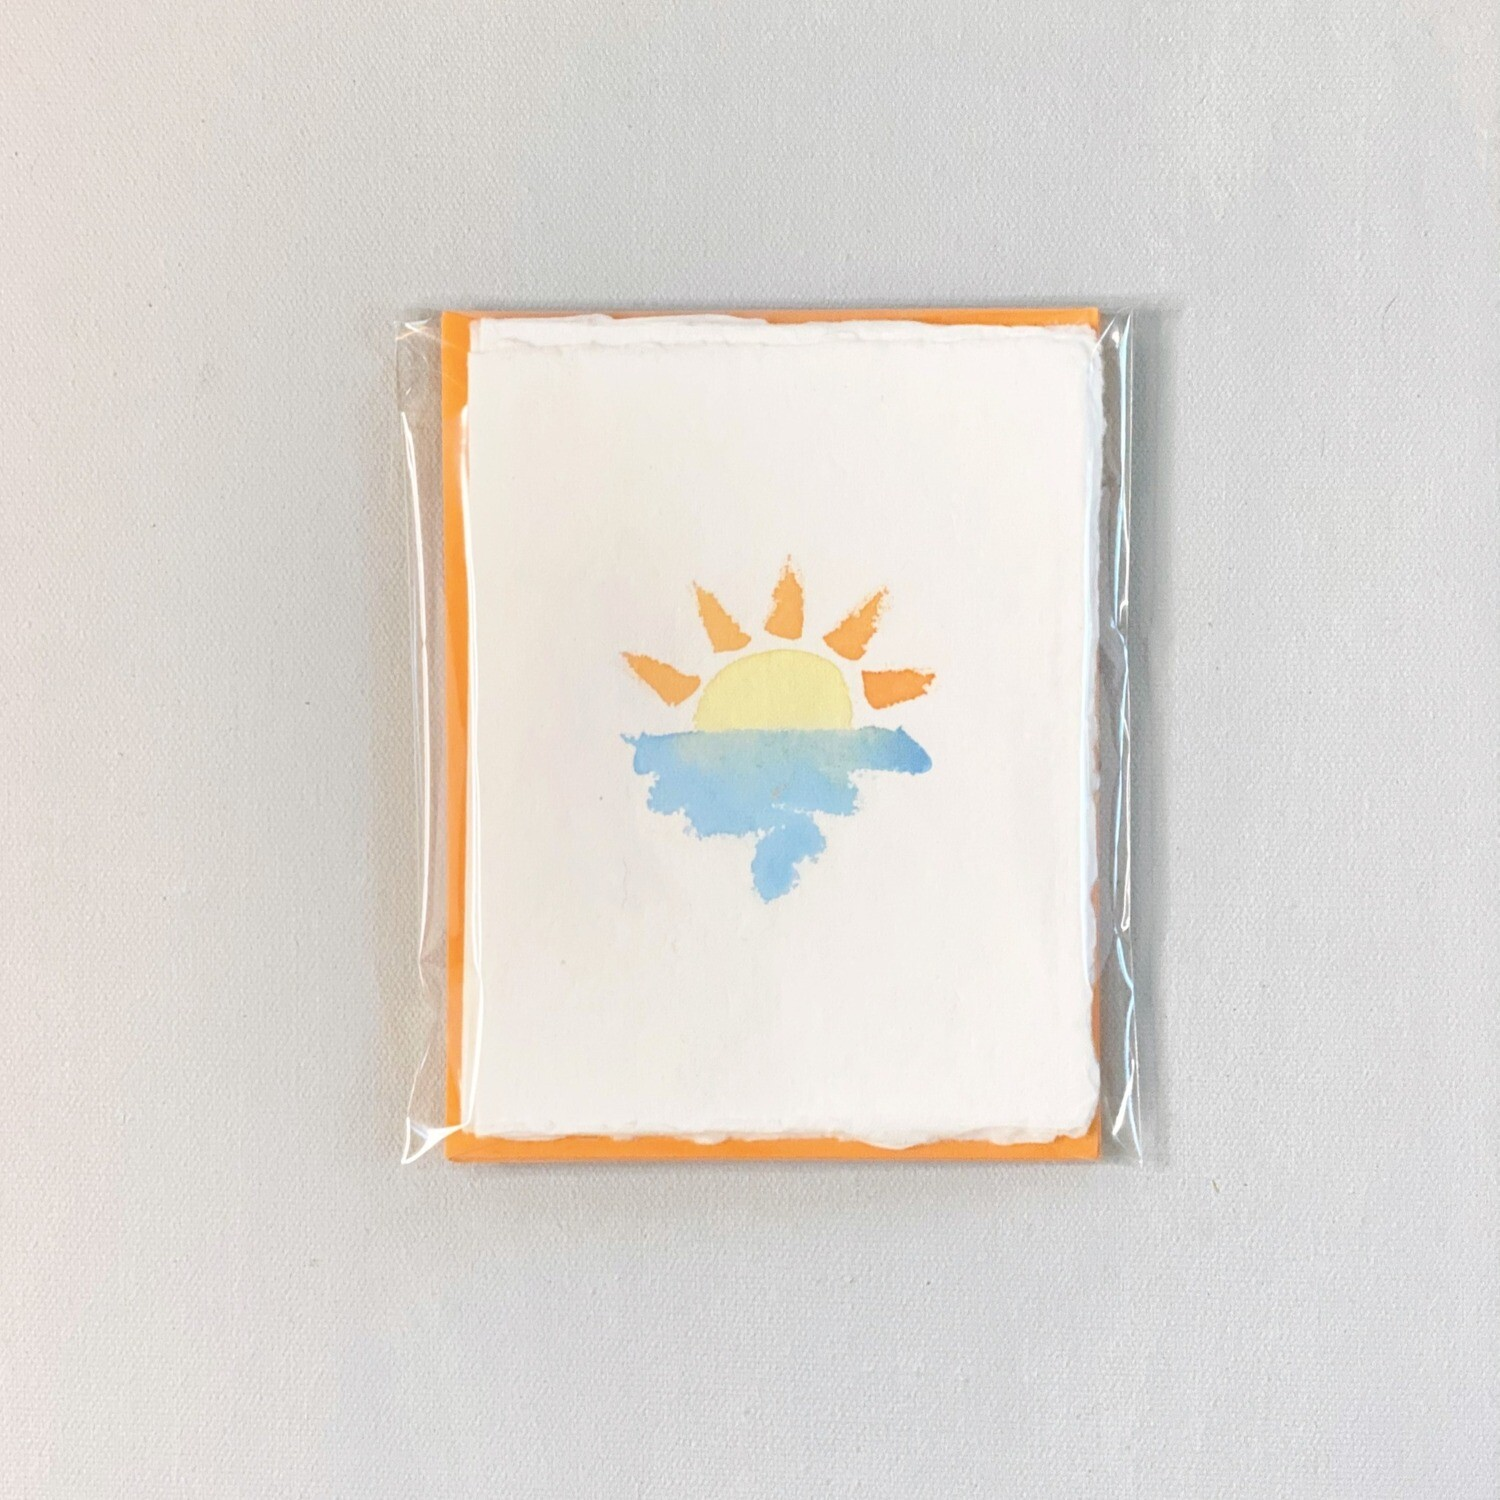 Sunrise Handmade Notecards